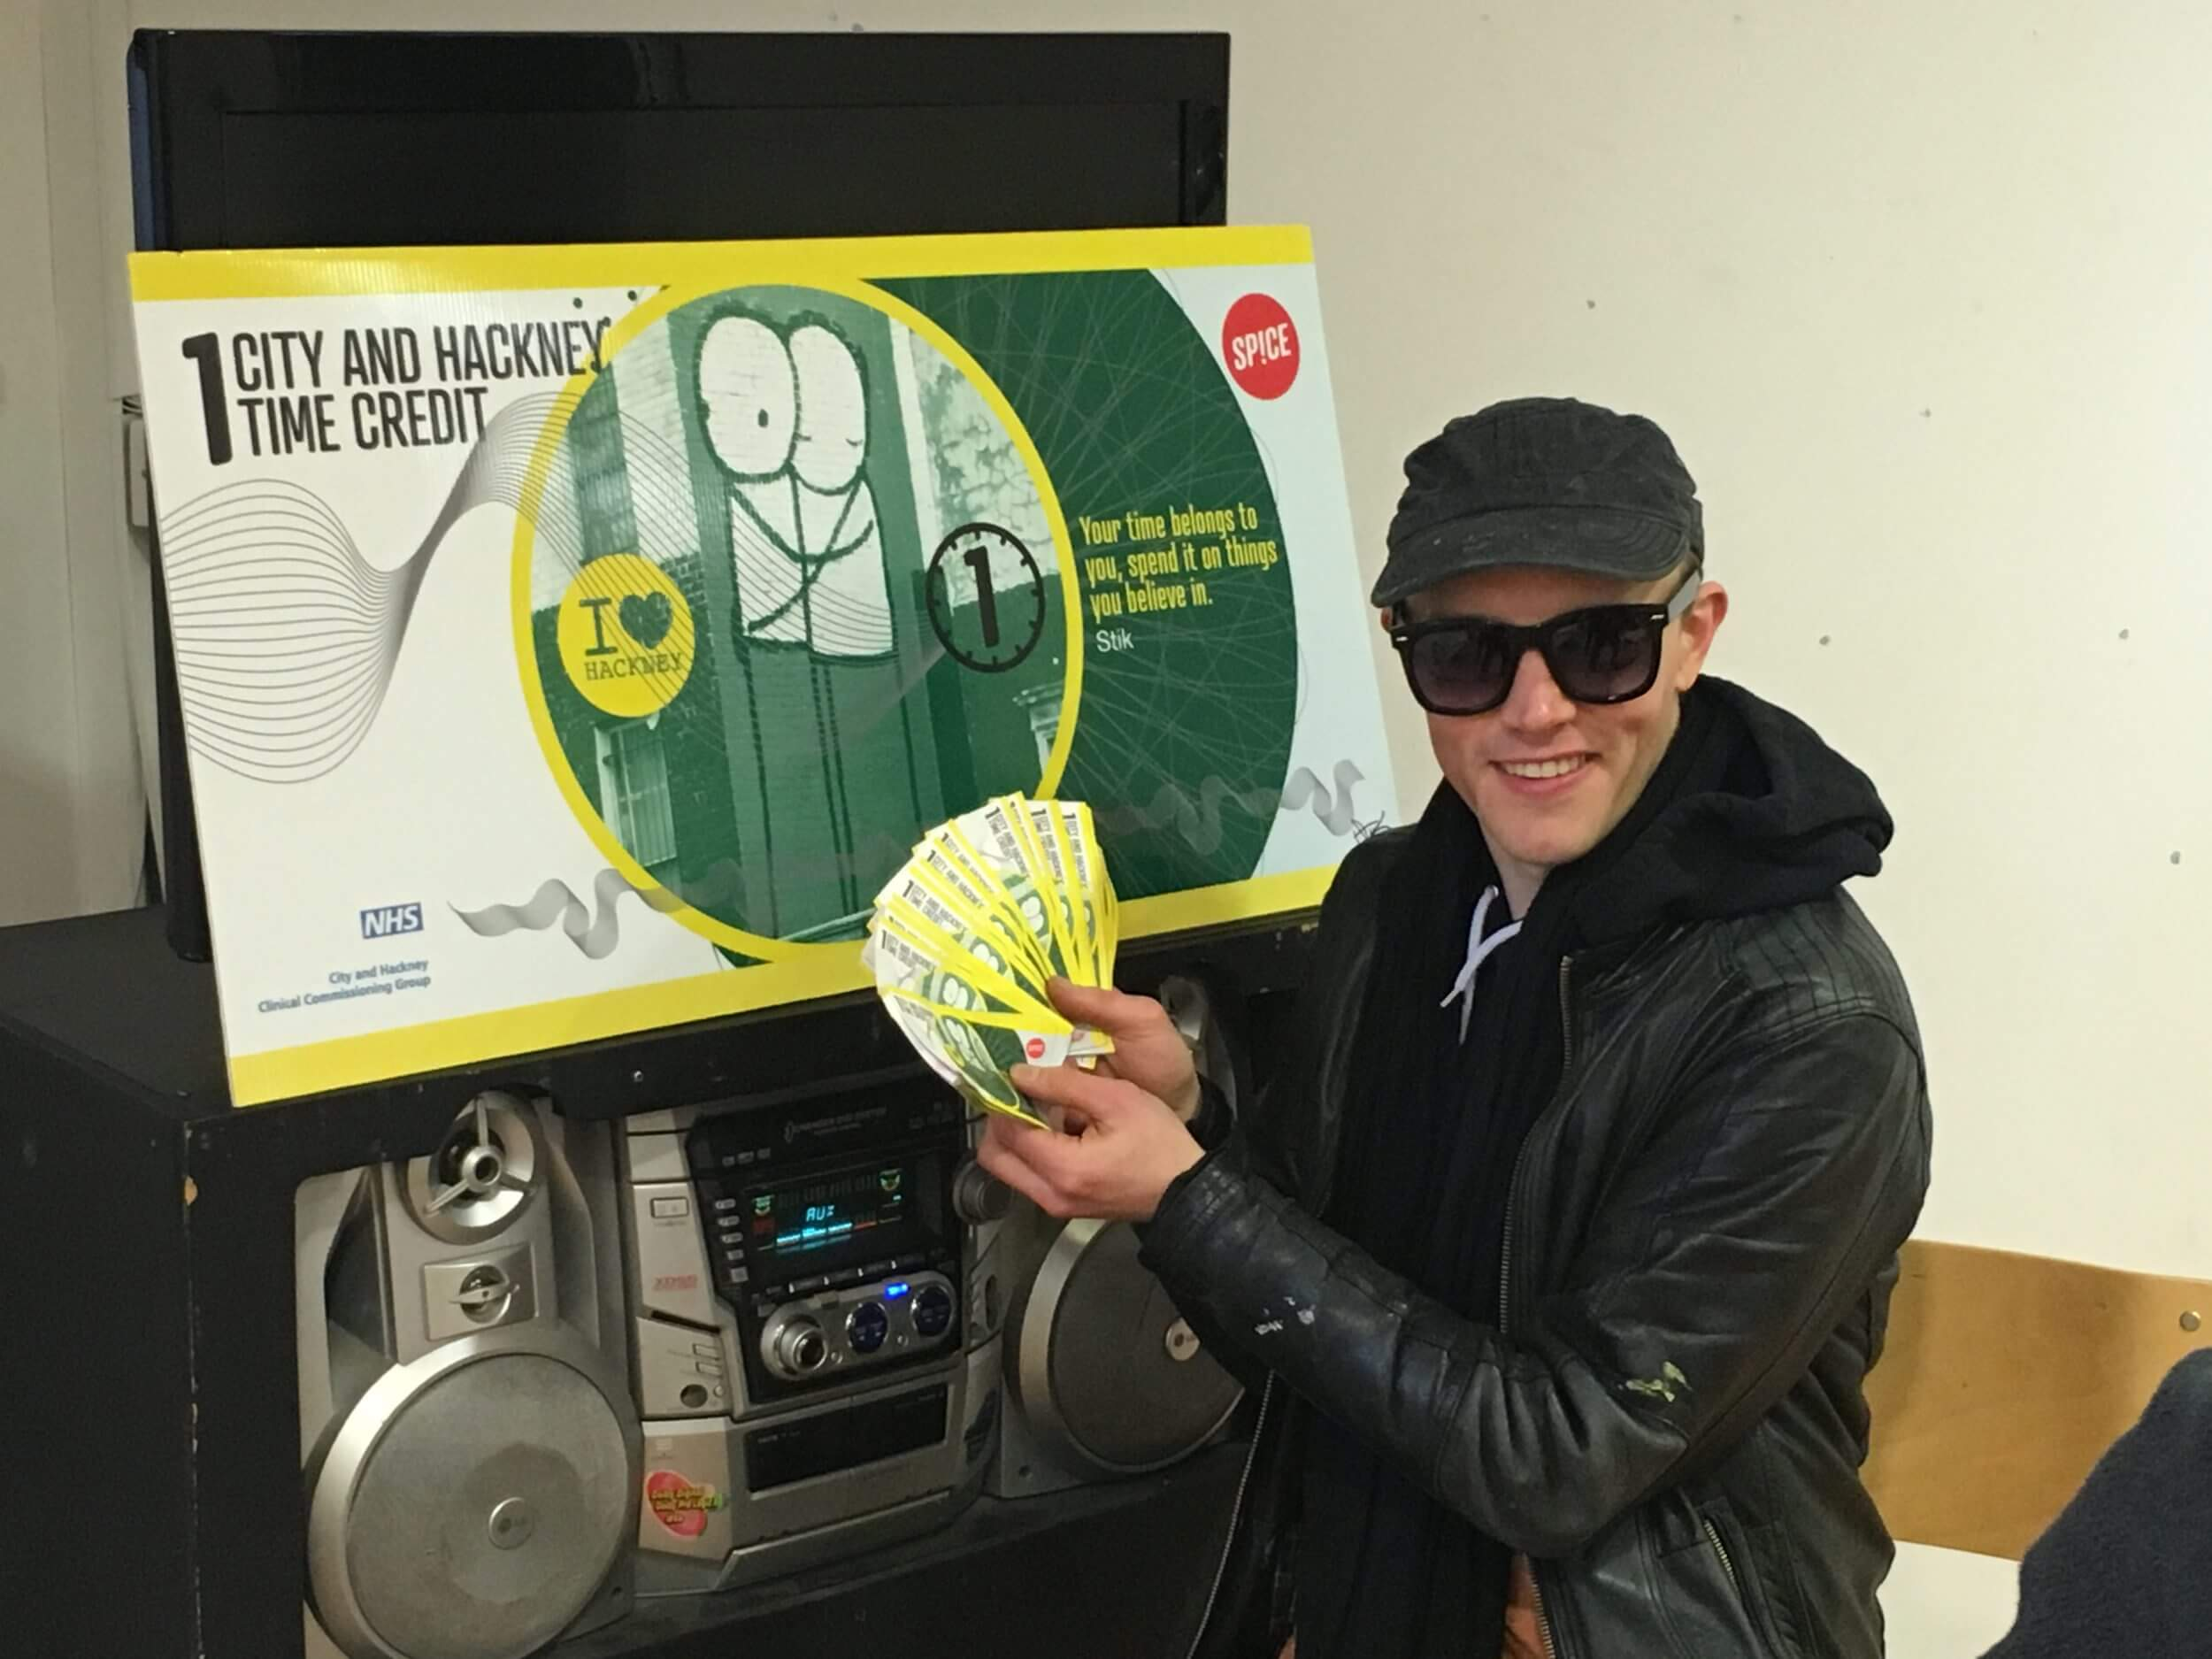 STIK Designs New Currency To Help Hackney Homeless